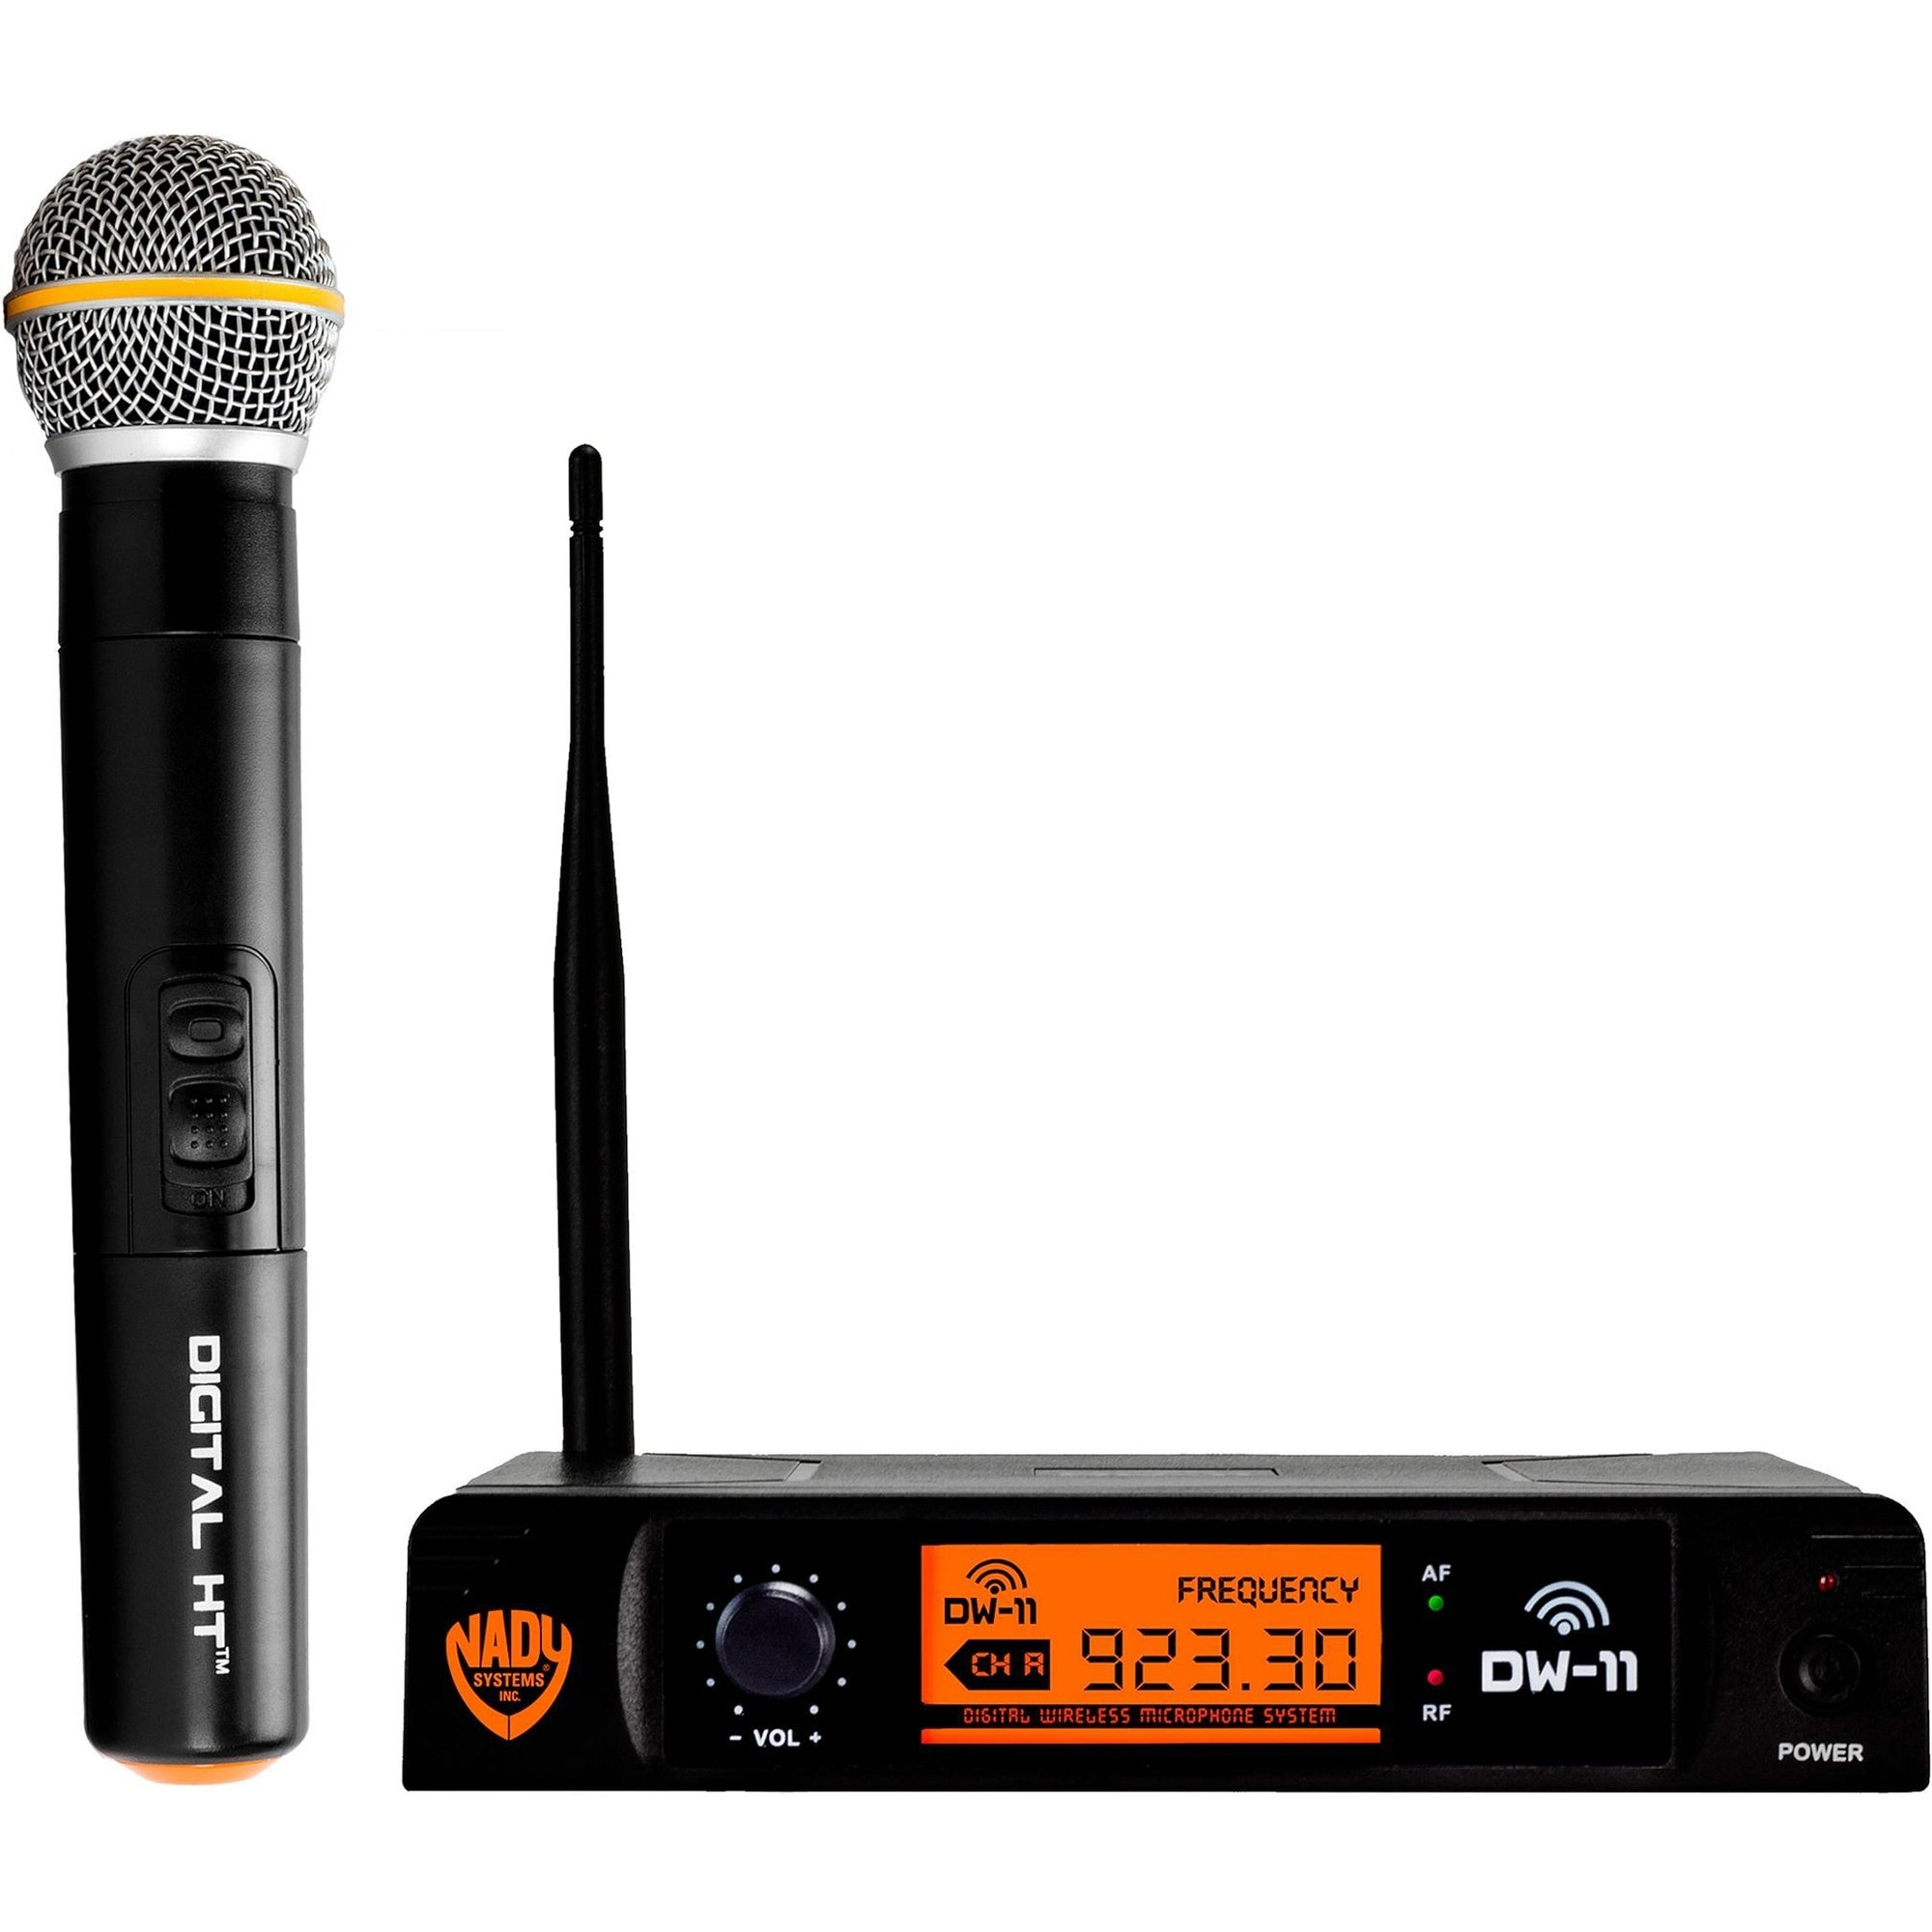 Nady DW-11 HT Single Transmitter Digital Wireless Handheld Microphone System, Channel D-12